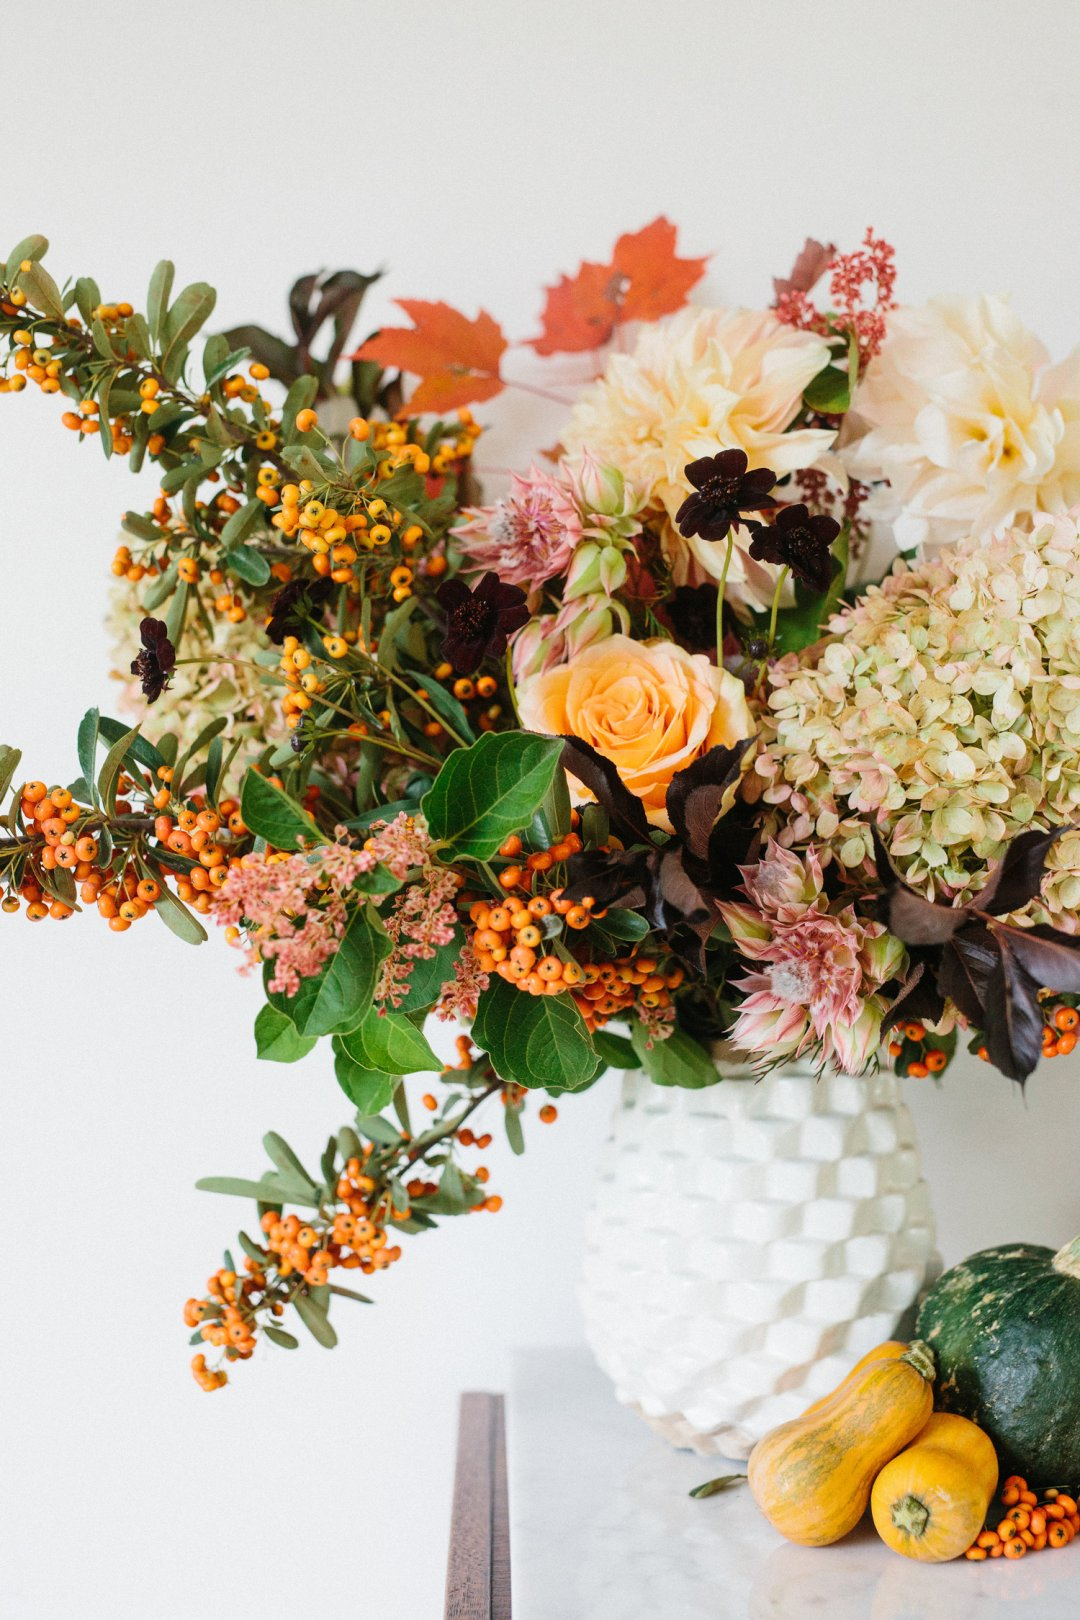 Floral bouquet in rustic fall colors including orange and yellow in a white vase